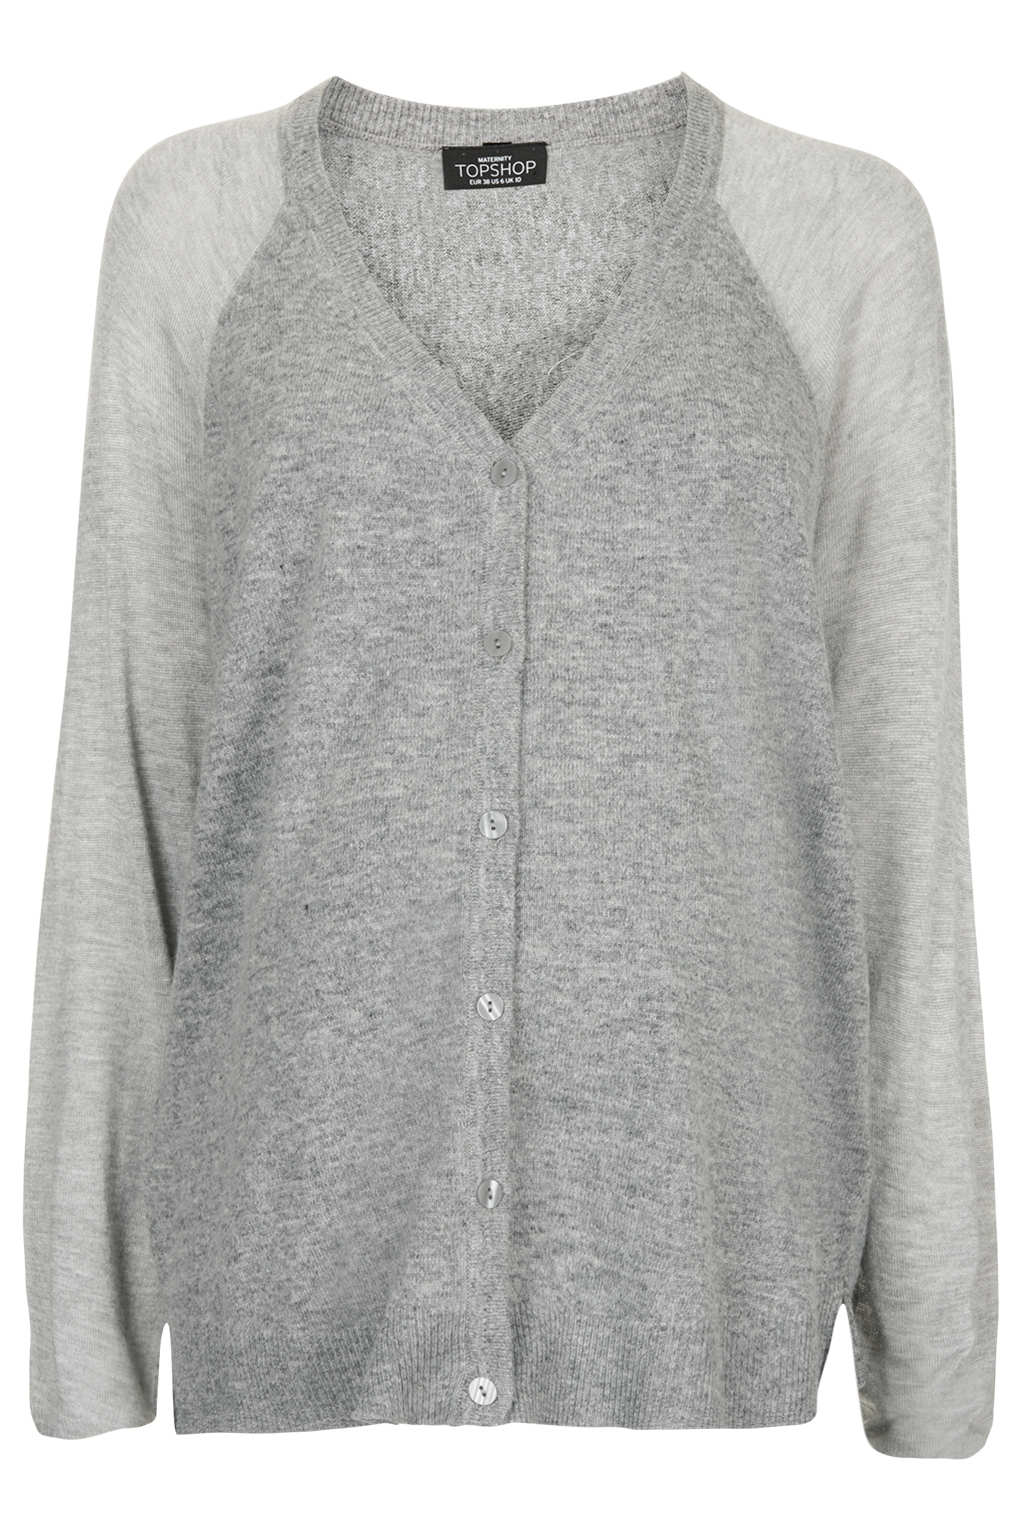 Topshop Maternity Sheer Solid Cardigan in Gray | Lyst